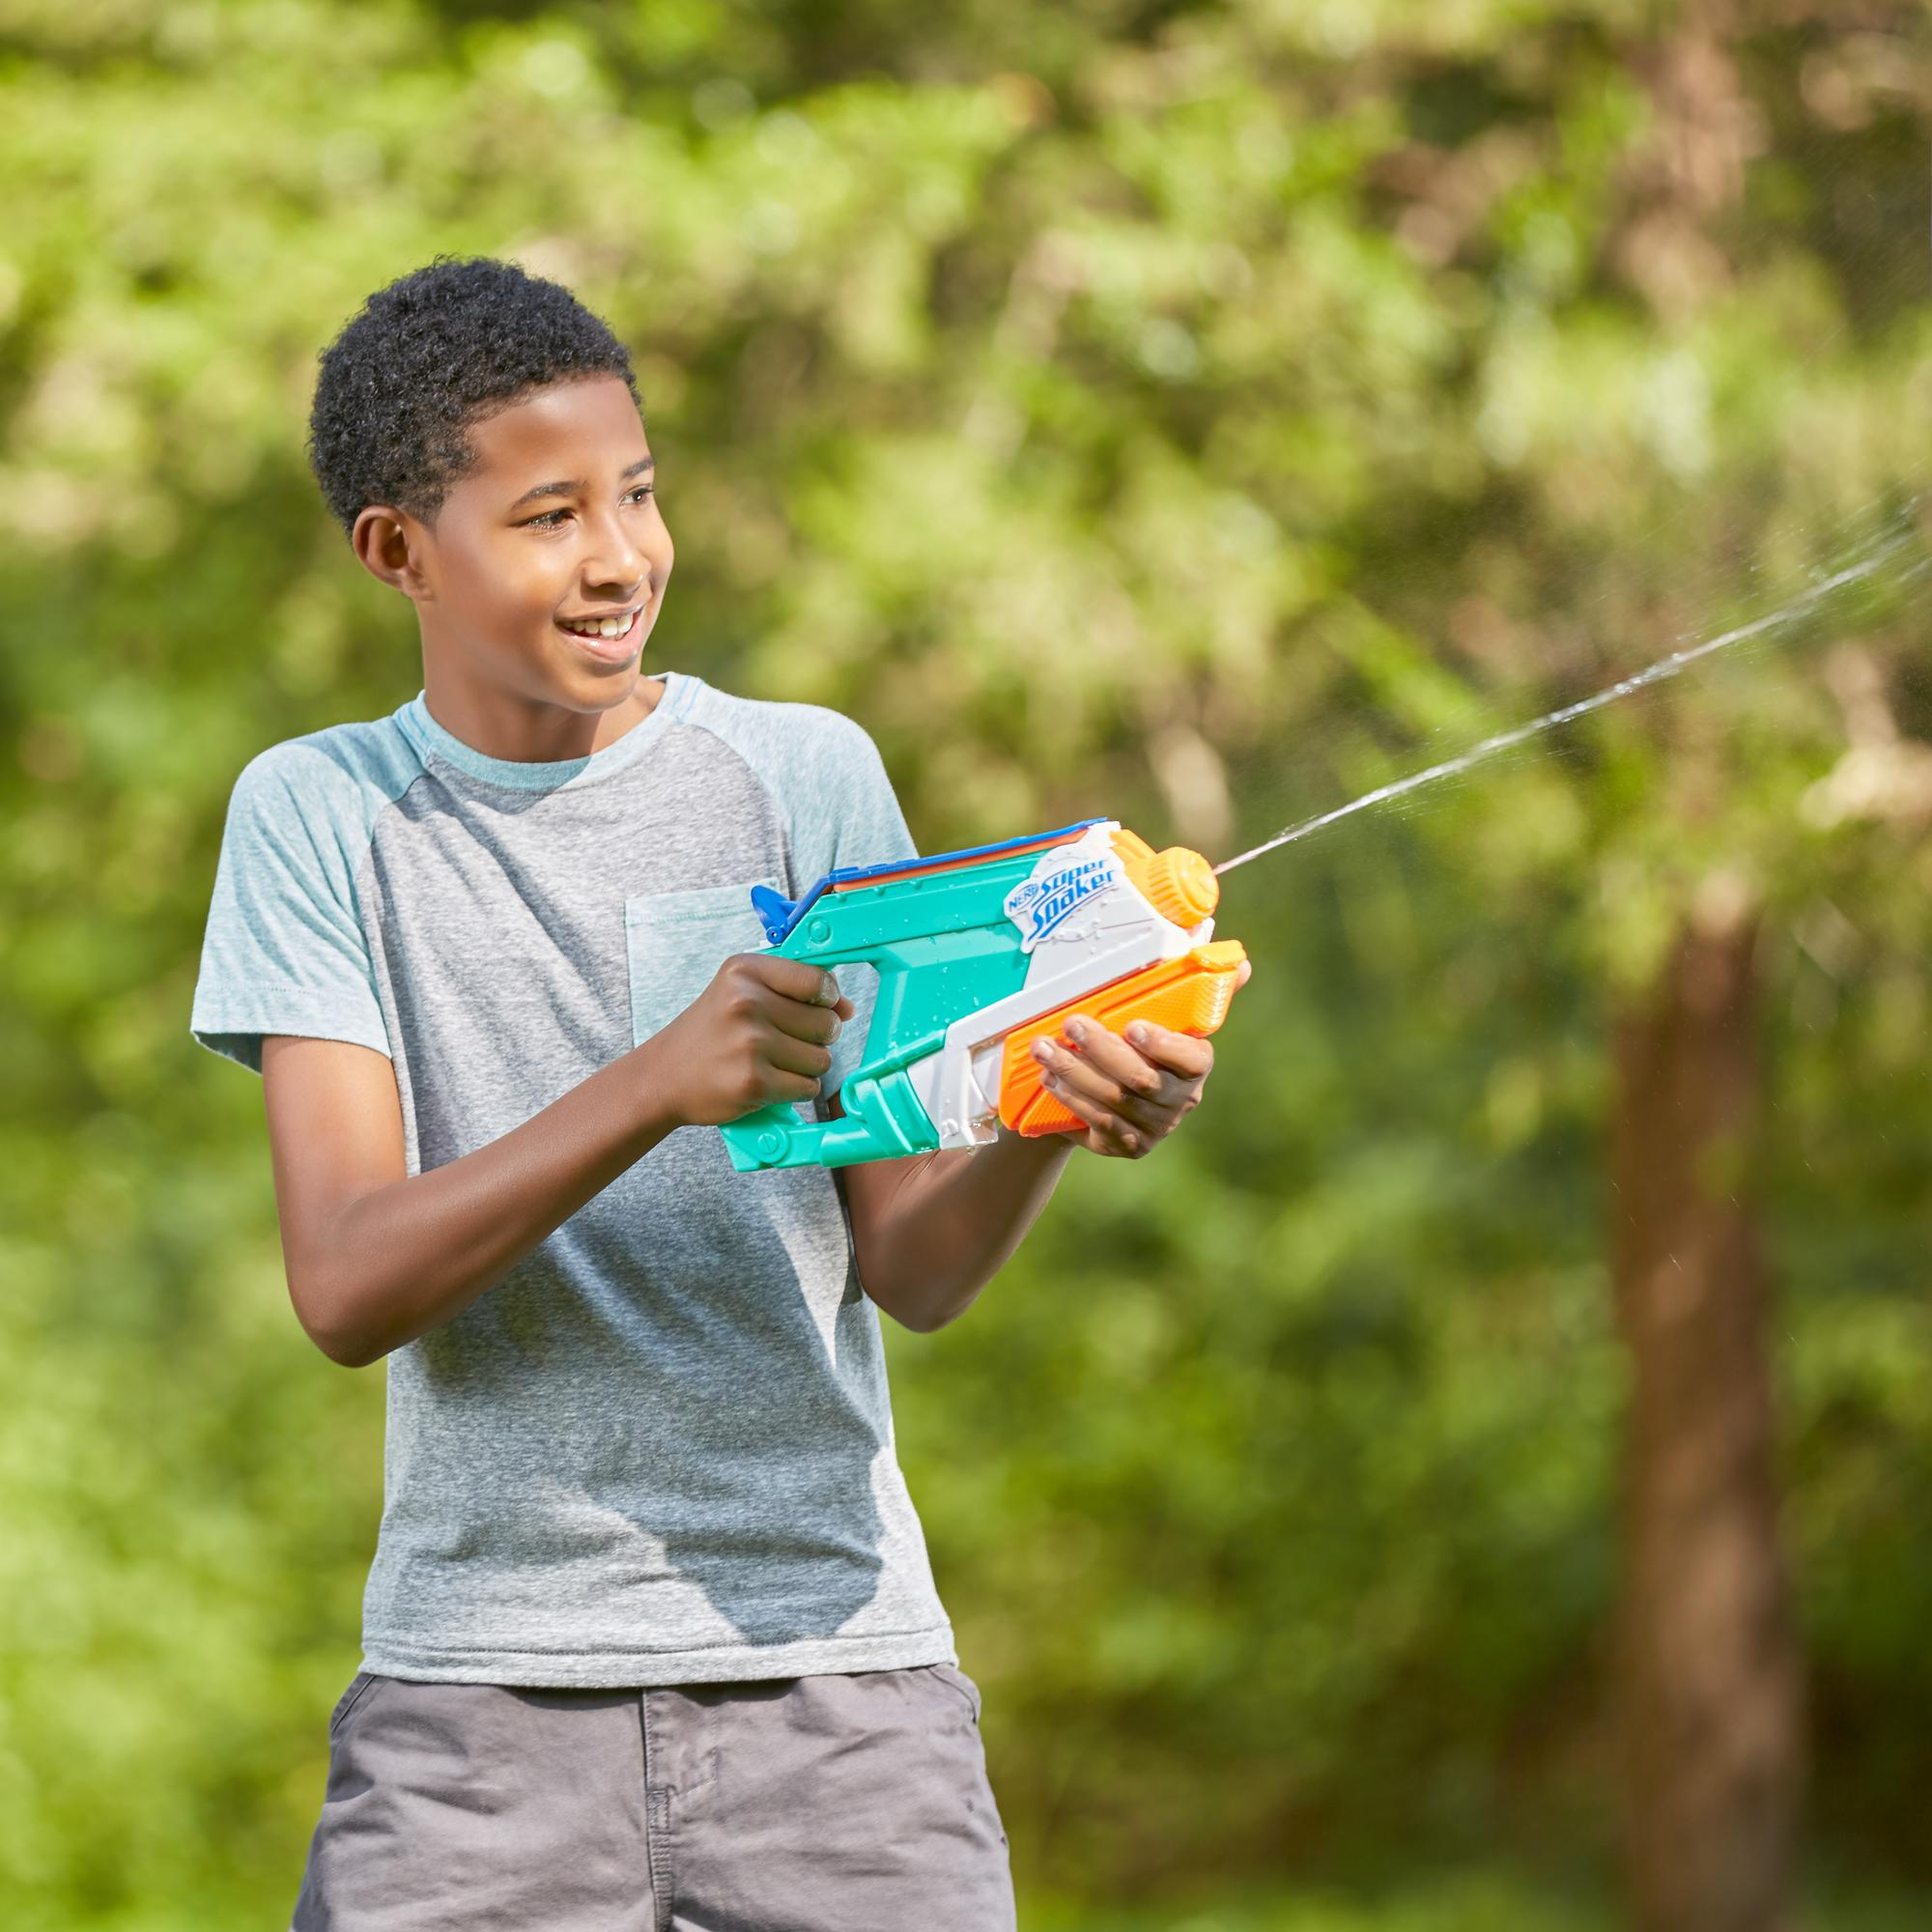 NERF SUPER SOAKER SPLASH MOUTH